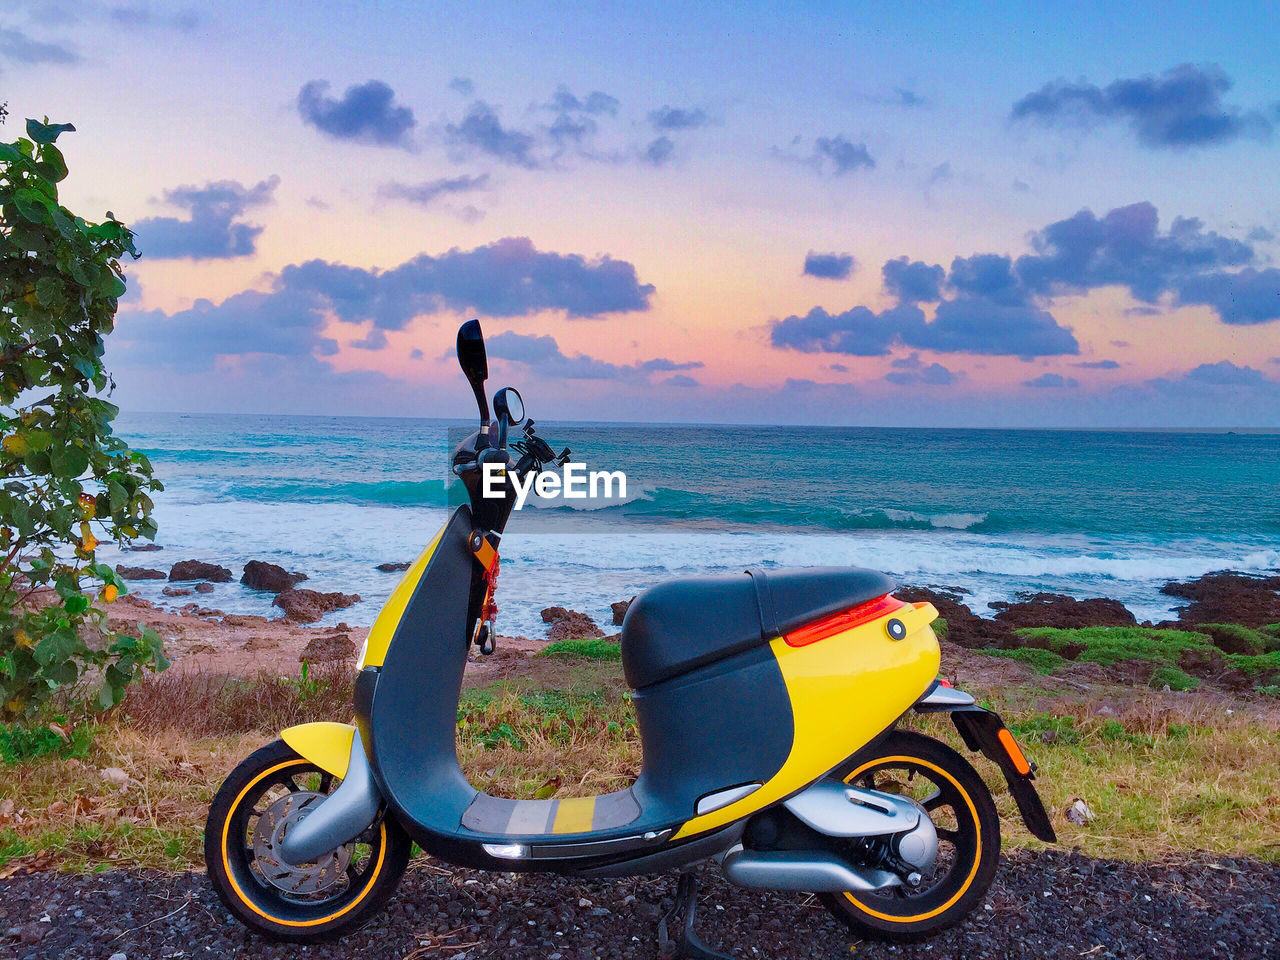 water, sky, sea, transportation, cloud - sky, beauty in nature, land, mode of transportation, horizon, beach, horizon over water, nature, scenics - nature, stationary, land vehicle, outdoors, scooter, no people, day